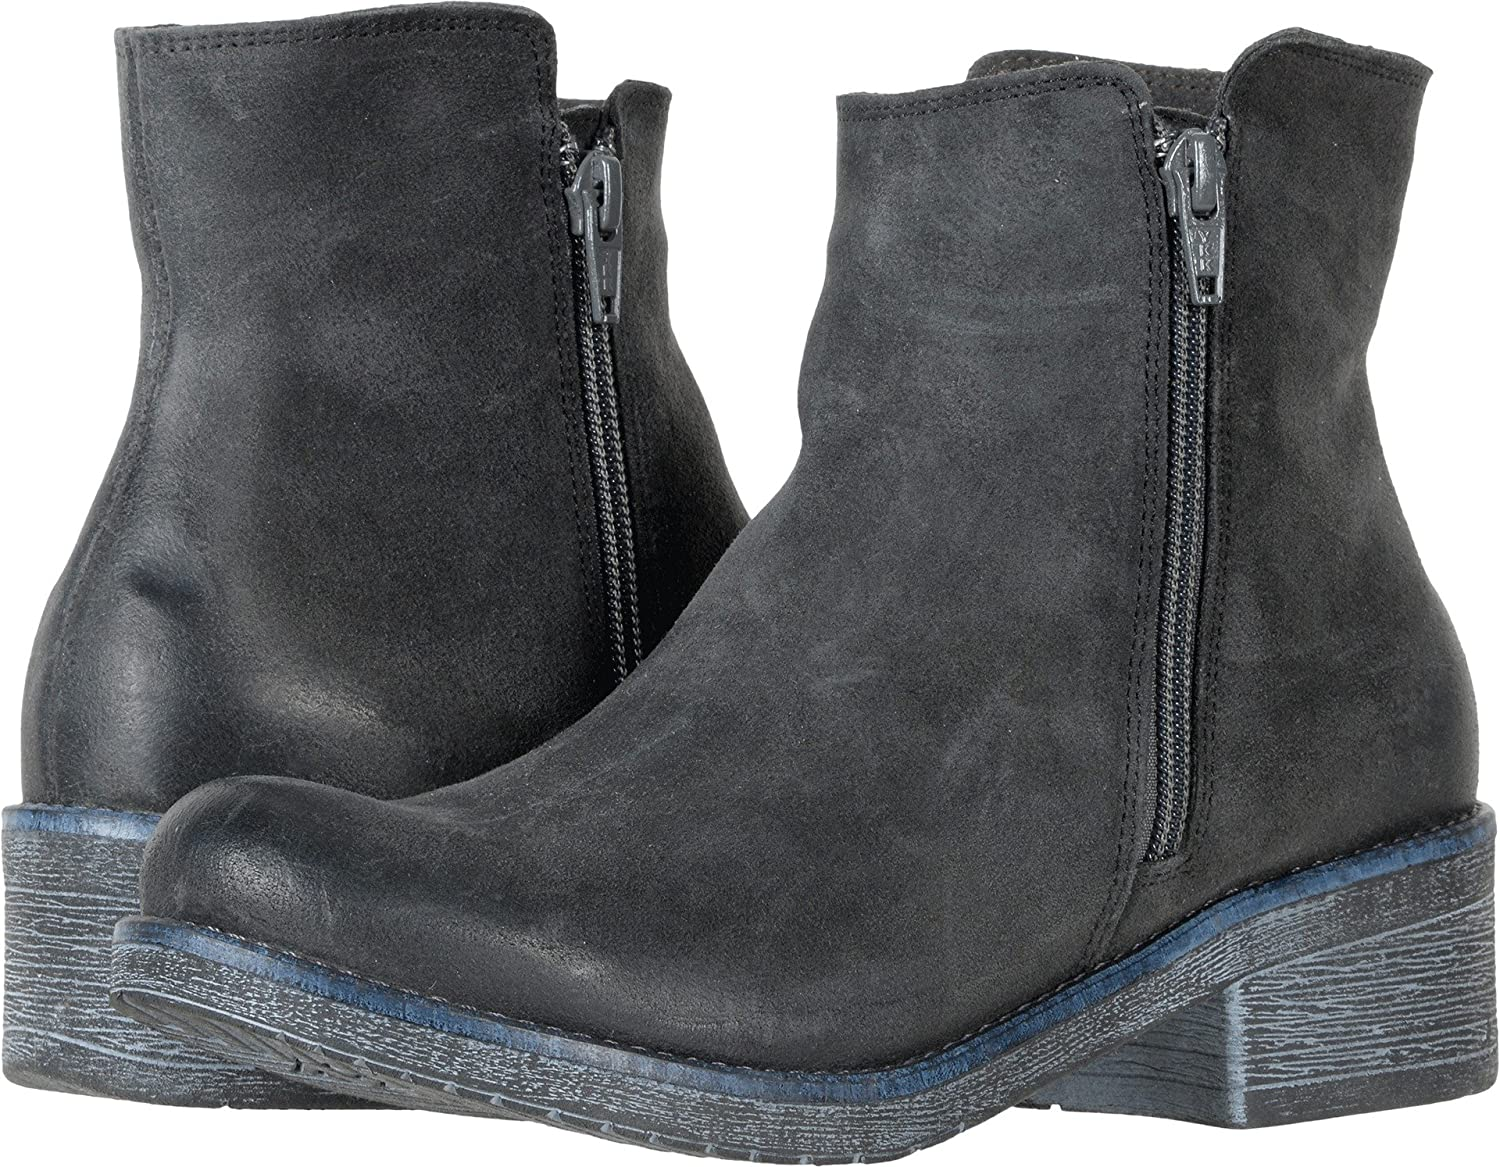 NAOT Women's Wander Ankle Booties B01N13BAWV 39 M EU|Brushed Oily Midnight Suede